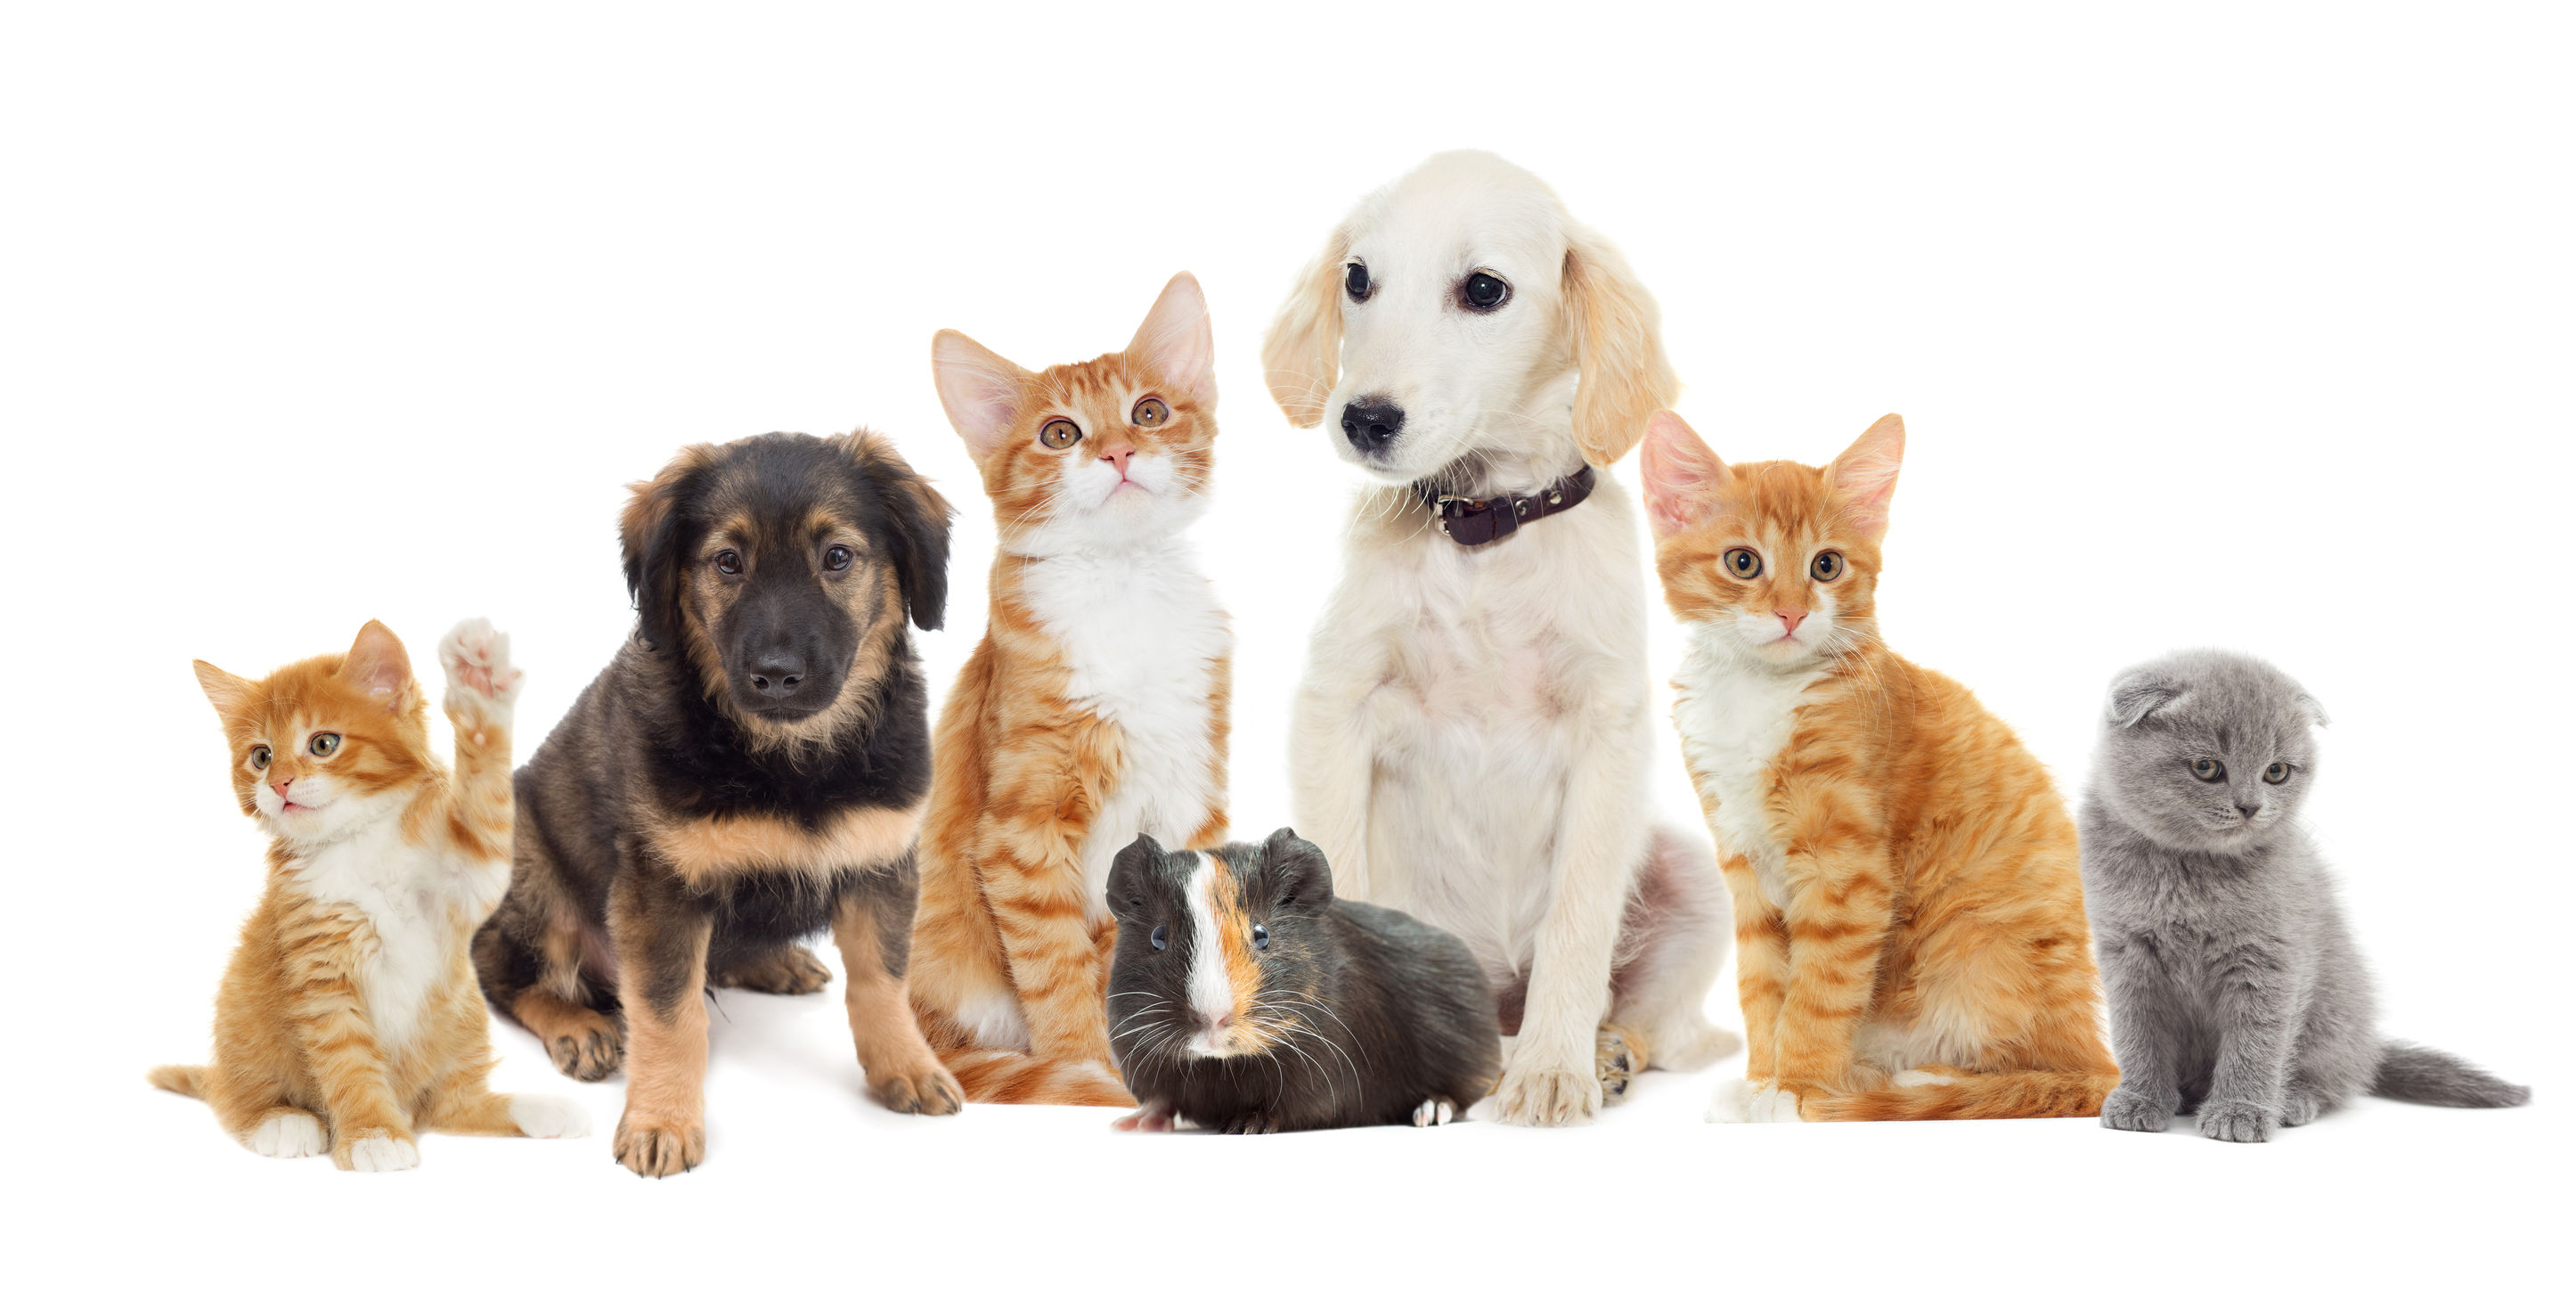 pet-friendly-cleaning-service-nashville-tn